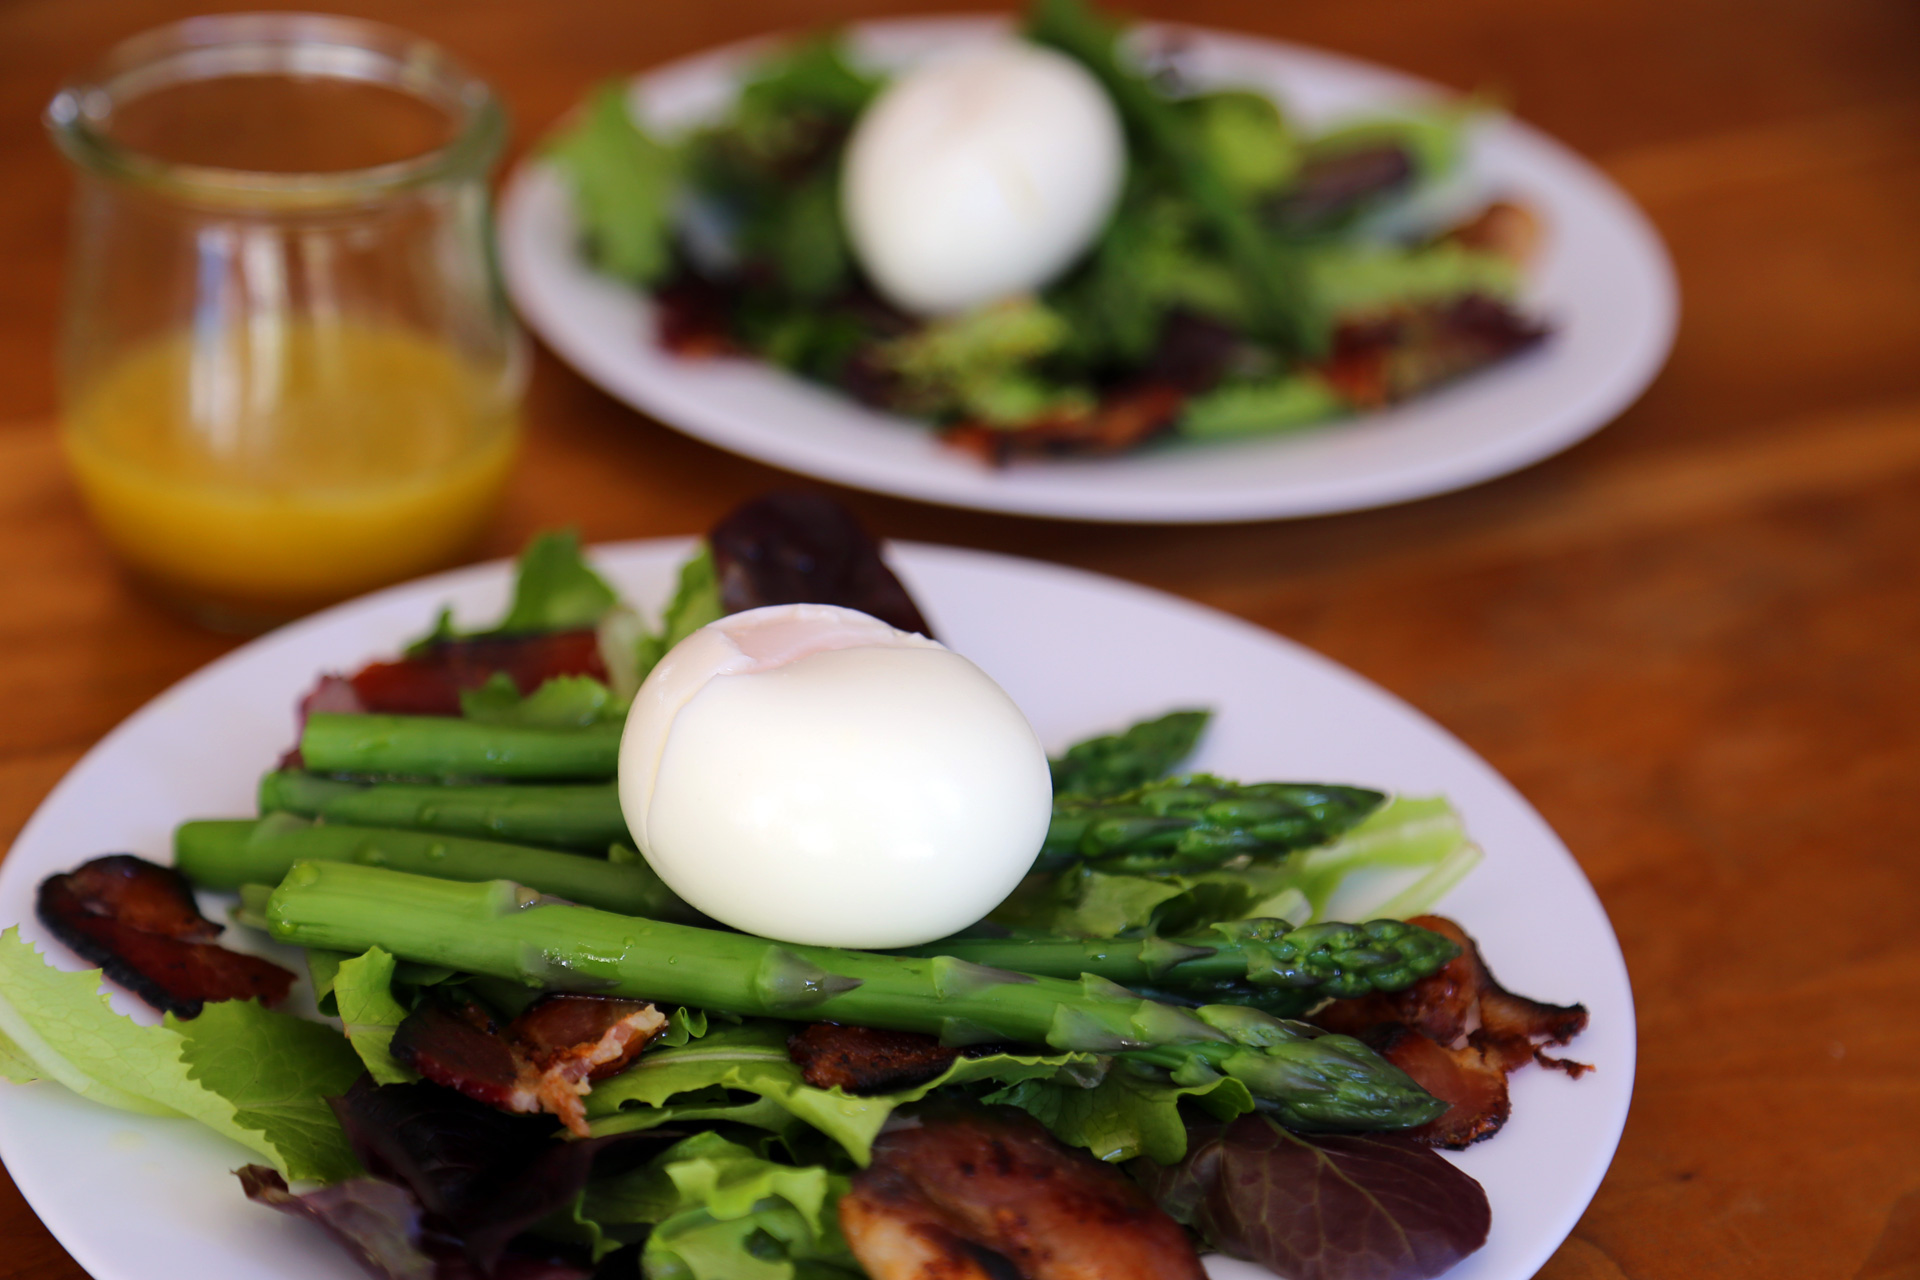 Toss to coat with vinaigrette, then divide between individual plates. Place an egg on each salad.